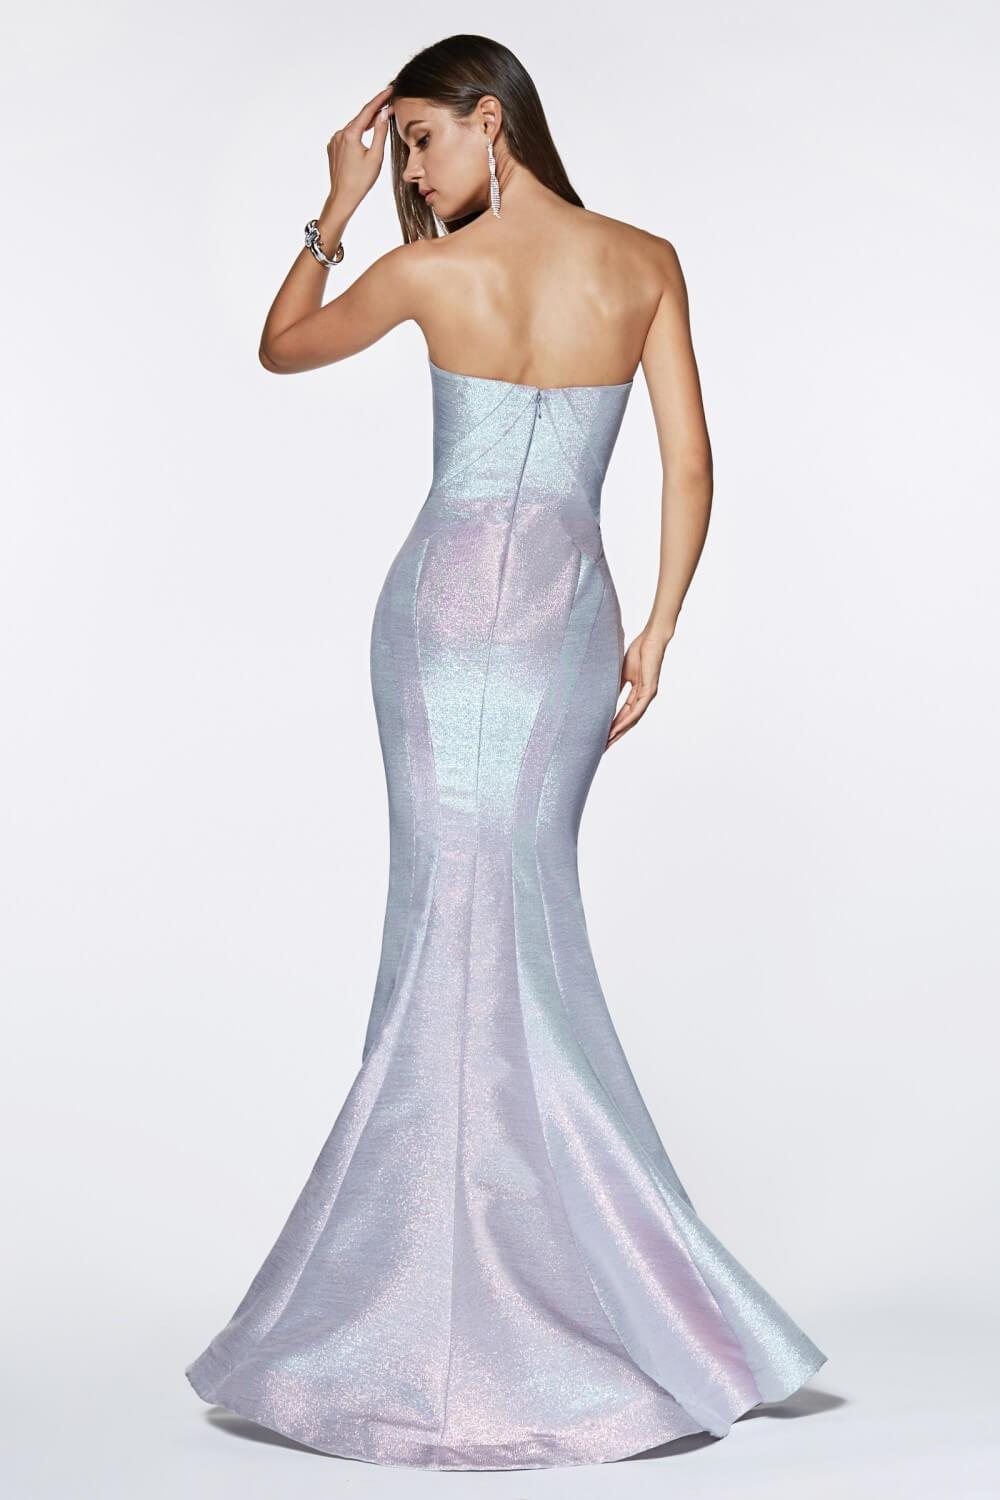 Strapless Long Metallic Mermaid Gown Prom Dress - The Dress Outlet